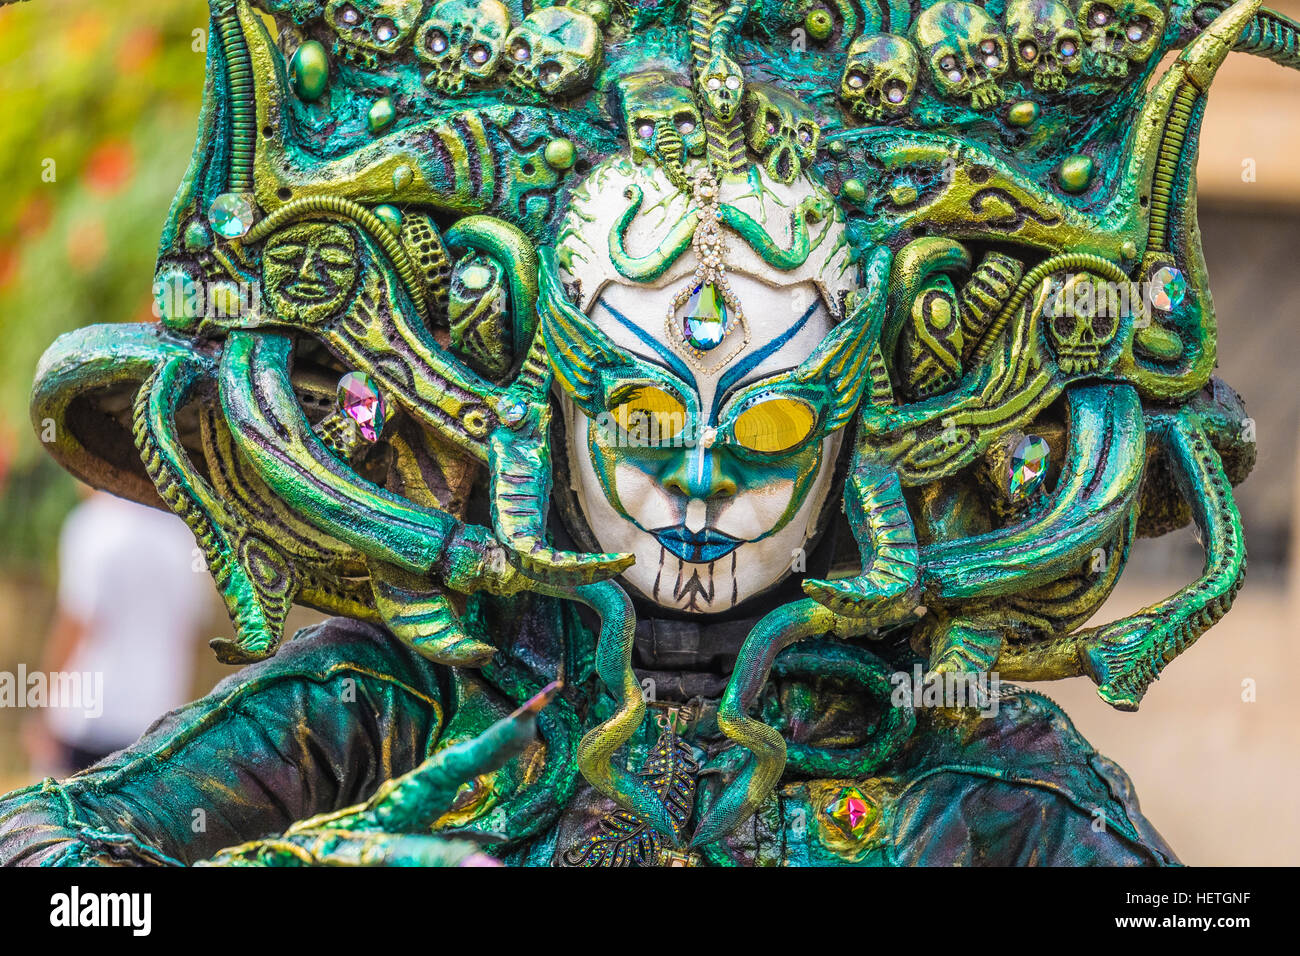 Head and shoulders of street performer in weird green headdress costume, with skulls, snakes and gold colored glasses/eyes. - Stock Image